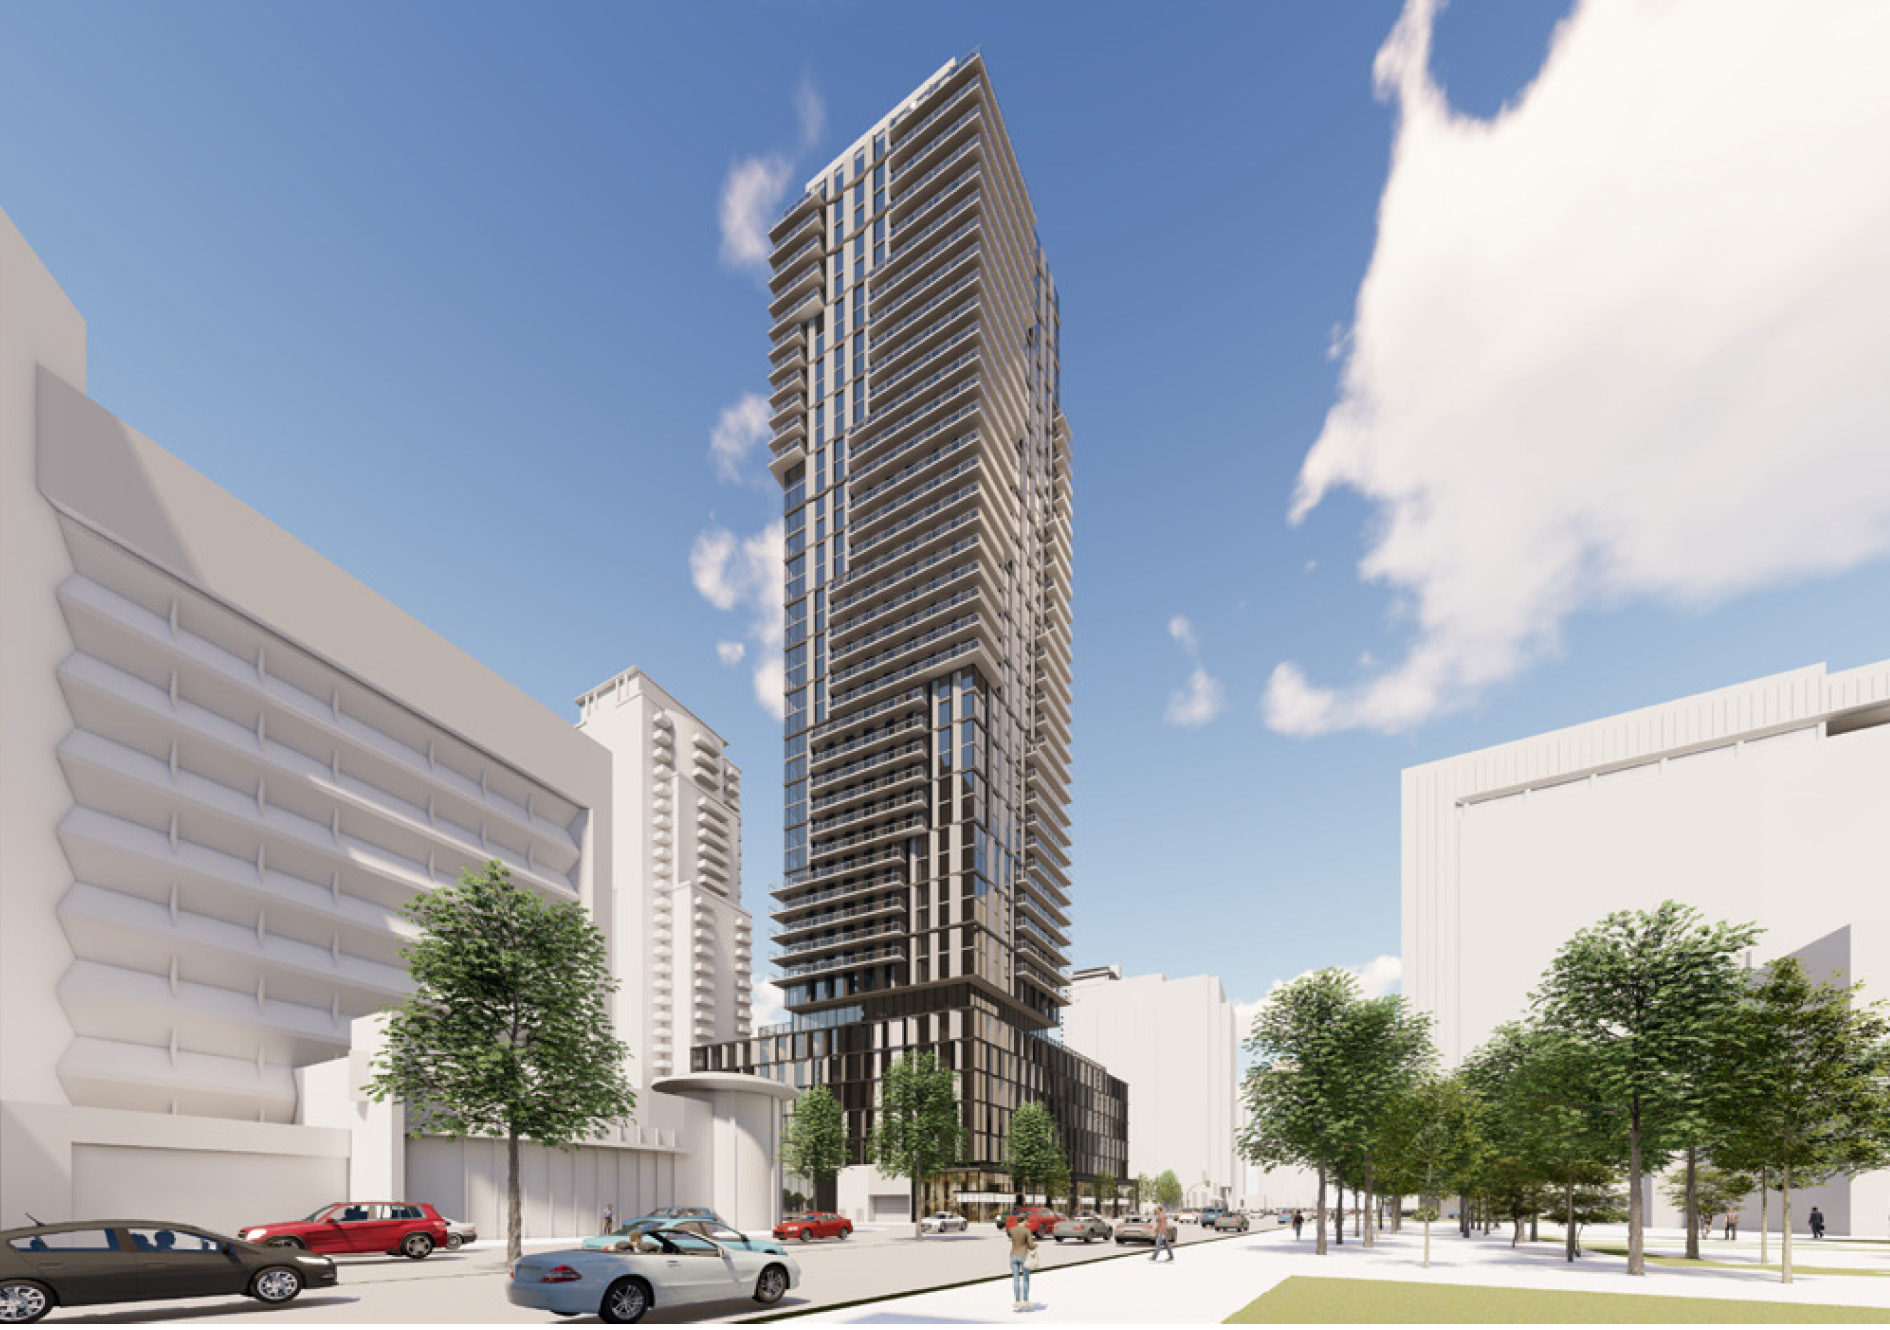 5051-5061 Yonge Street, Toronto, designed by Kirkor Architects and Planners for First Capital REIT.